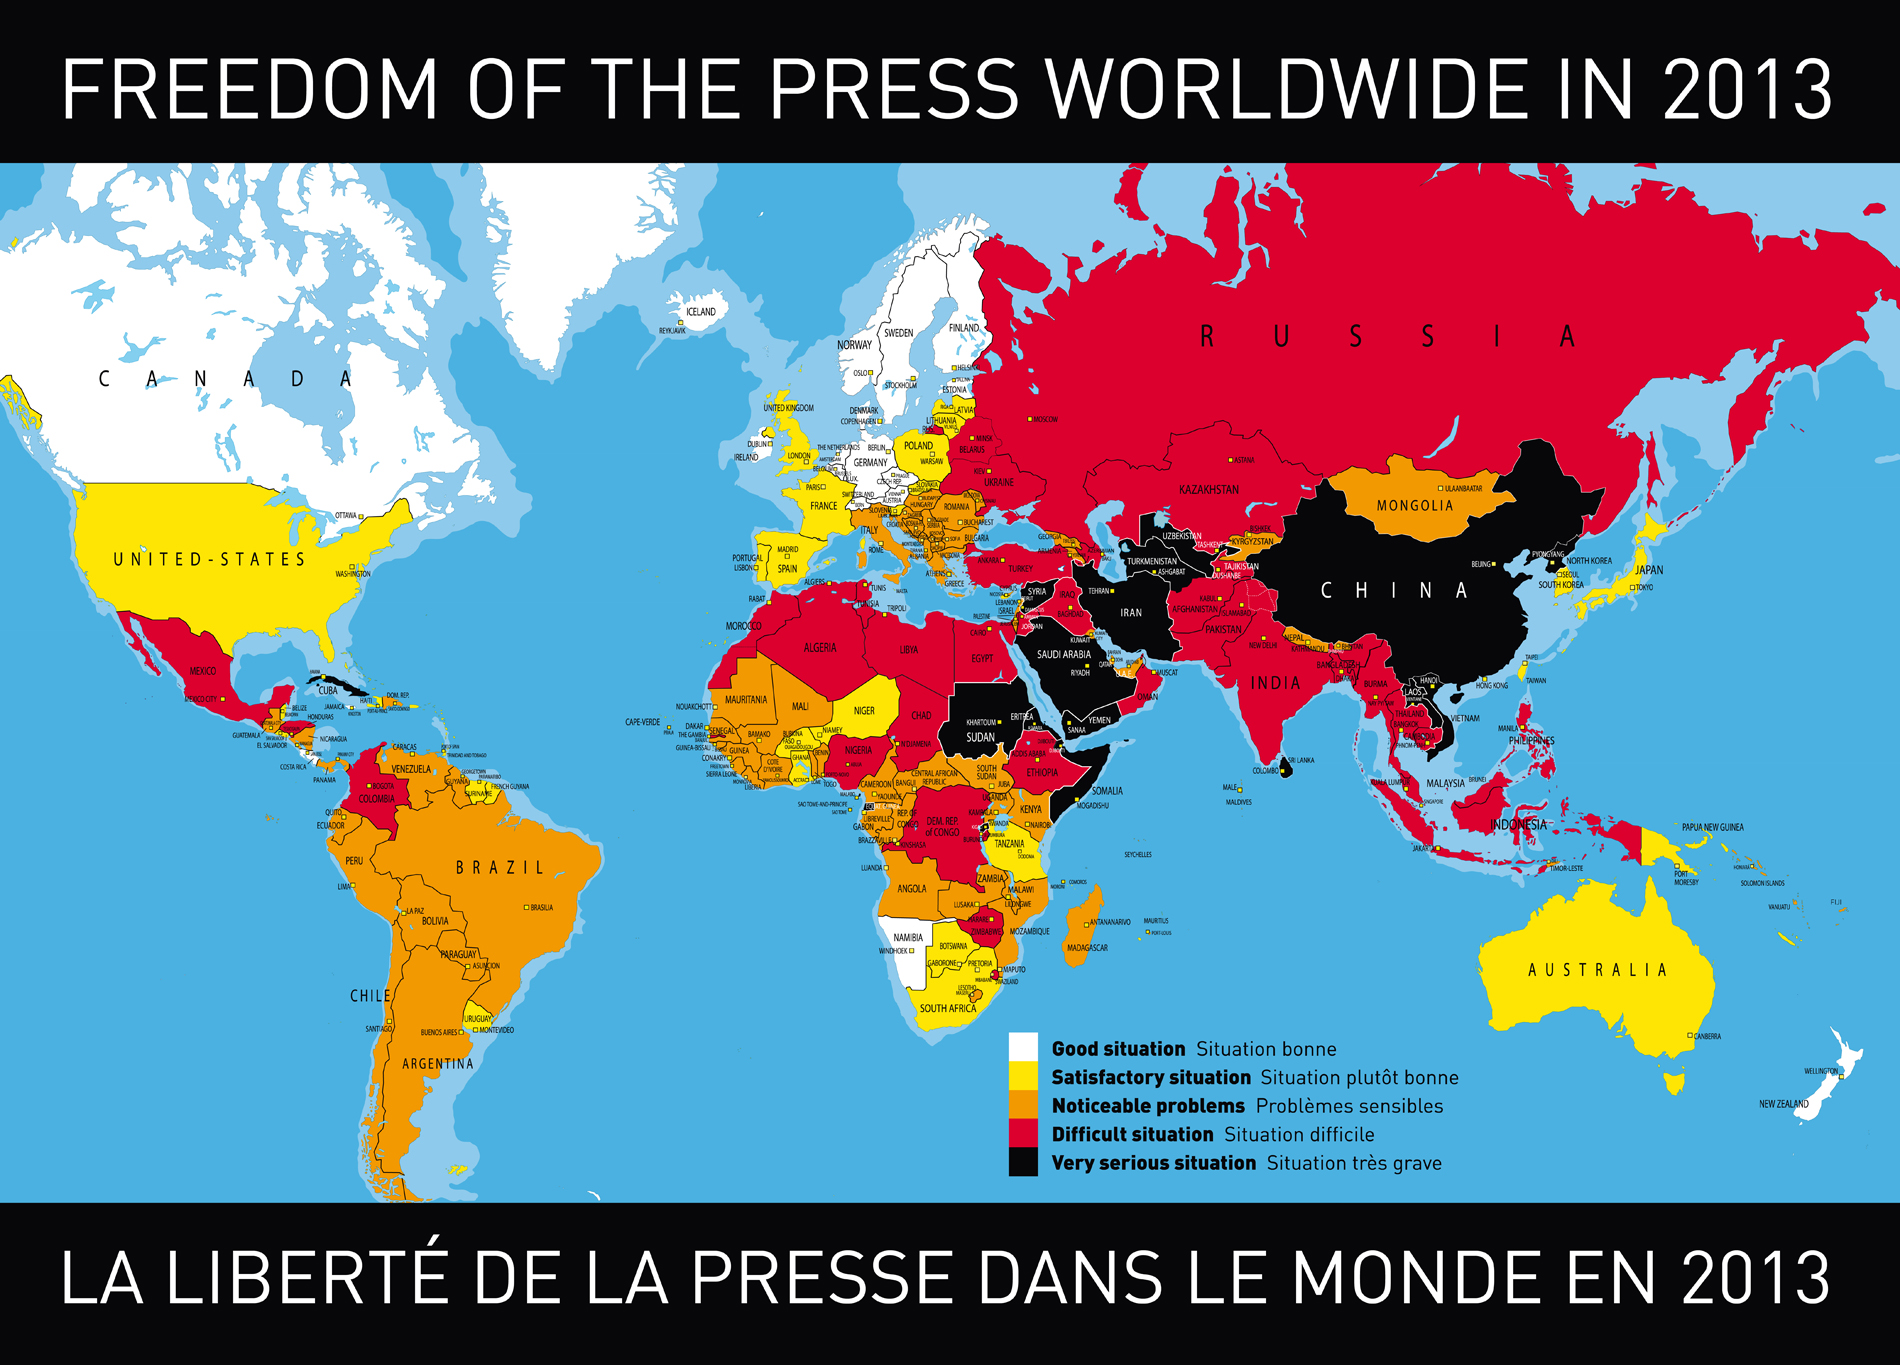 Press Freedom Index 2013 Map